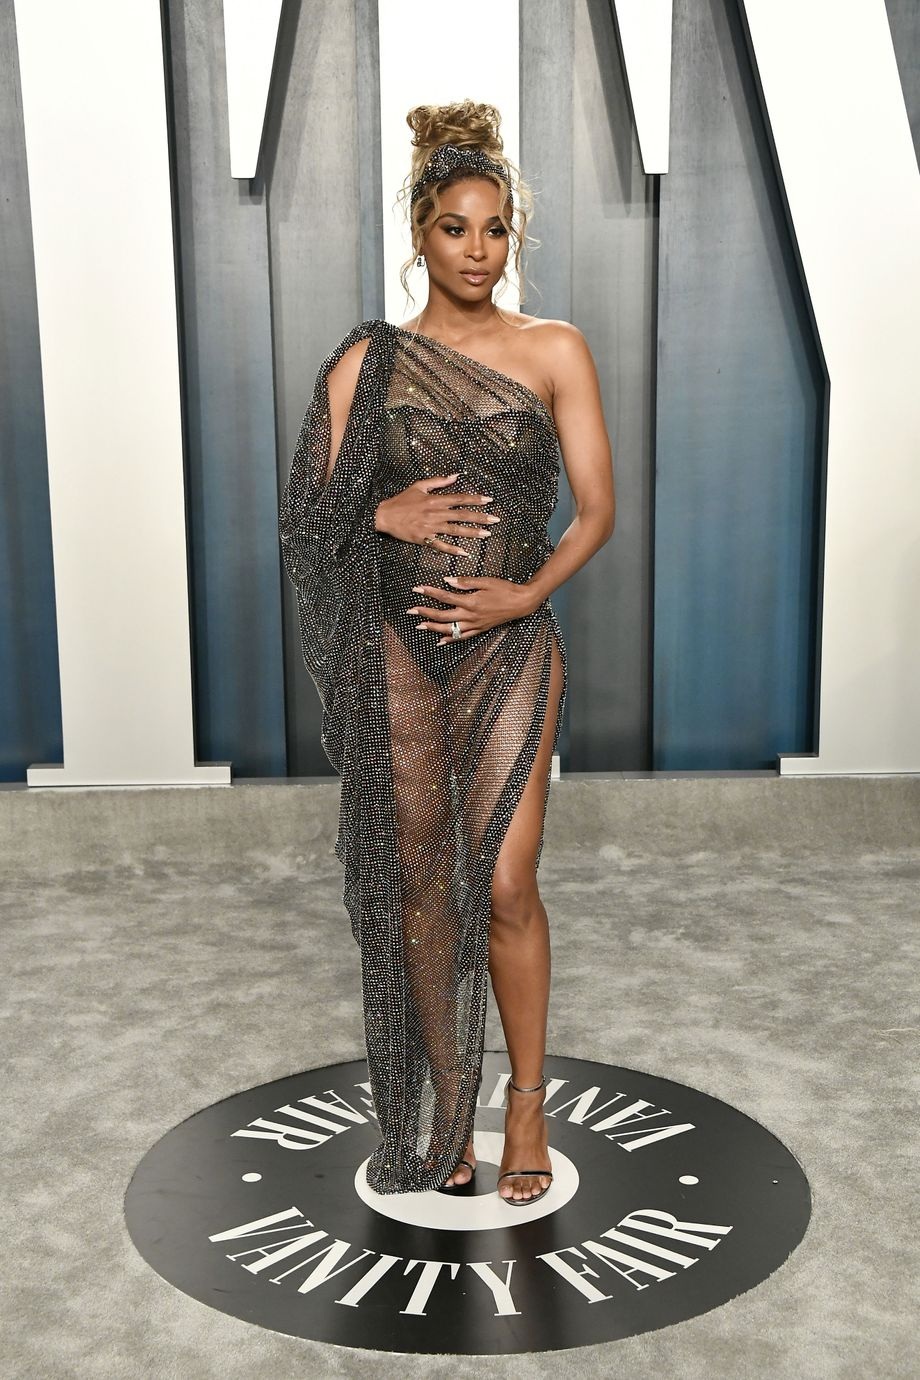 17 Great Outfits From The Vanity Fair Oscars Party